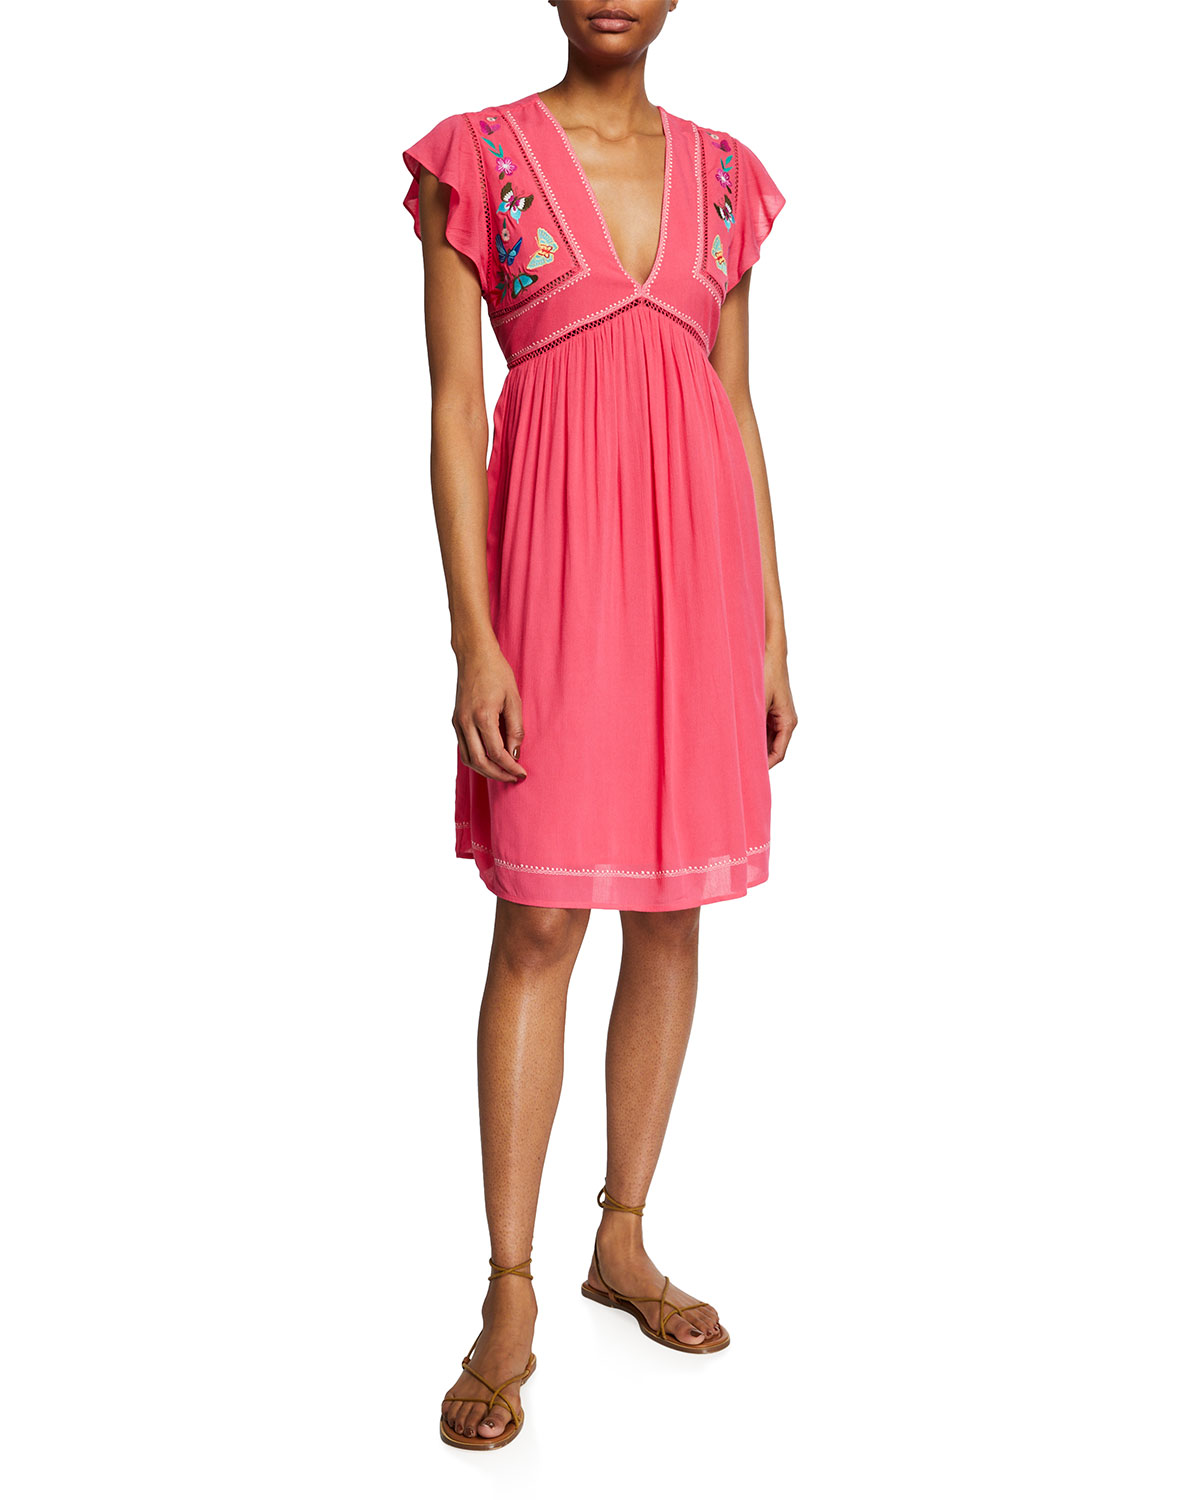 Johnny Was MARIPOSA COVERUP TUNIC W/ EMBROIDERY